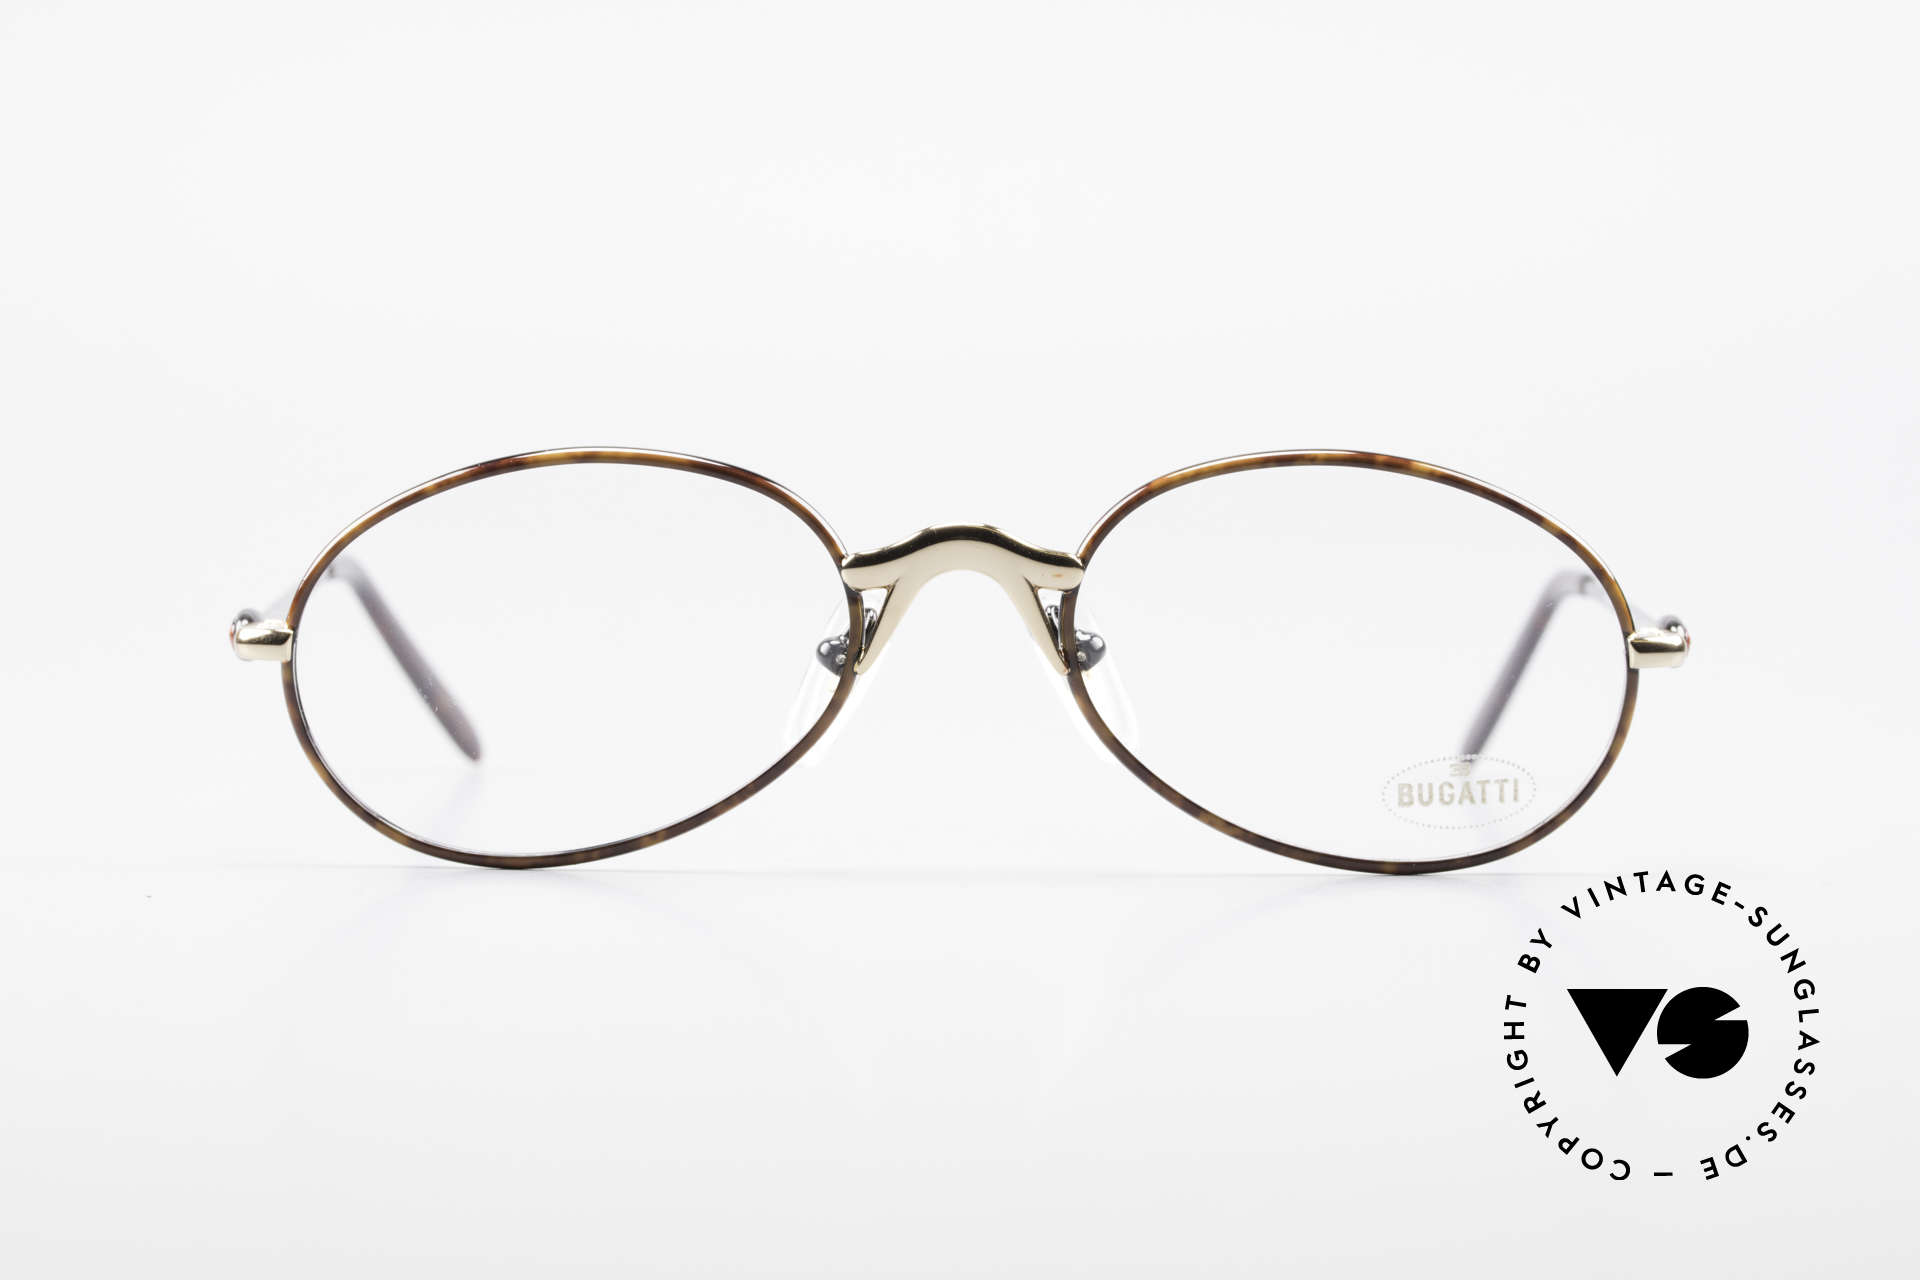 Bugatti 22157 Rare Oval 90's Vintage Specs, interesting frame finish in black and chestnut brown, Made for Men and Women